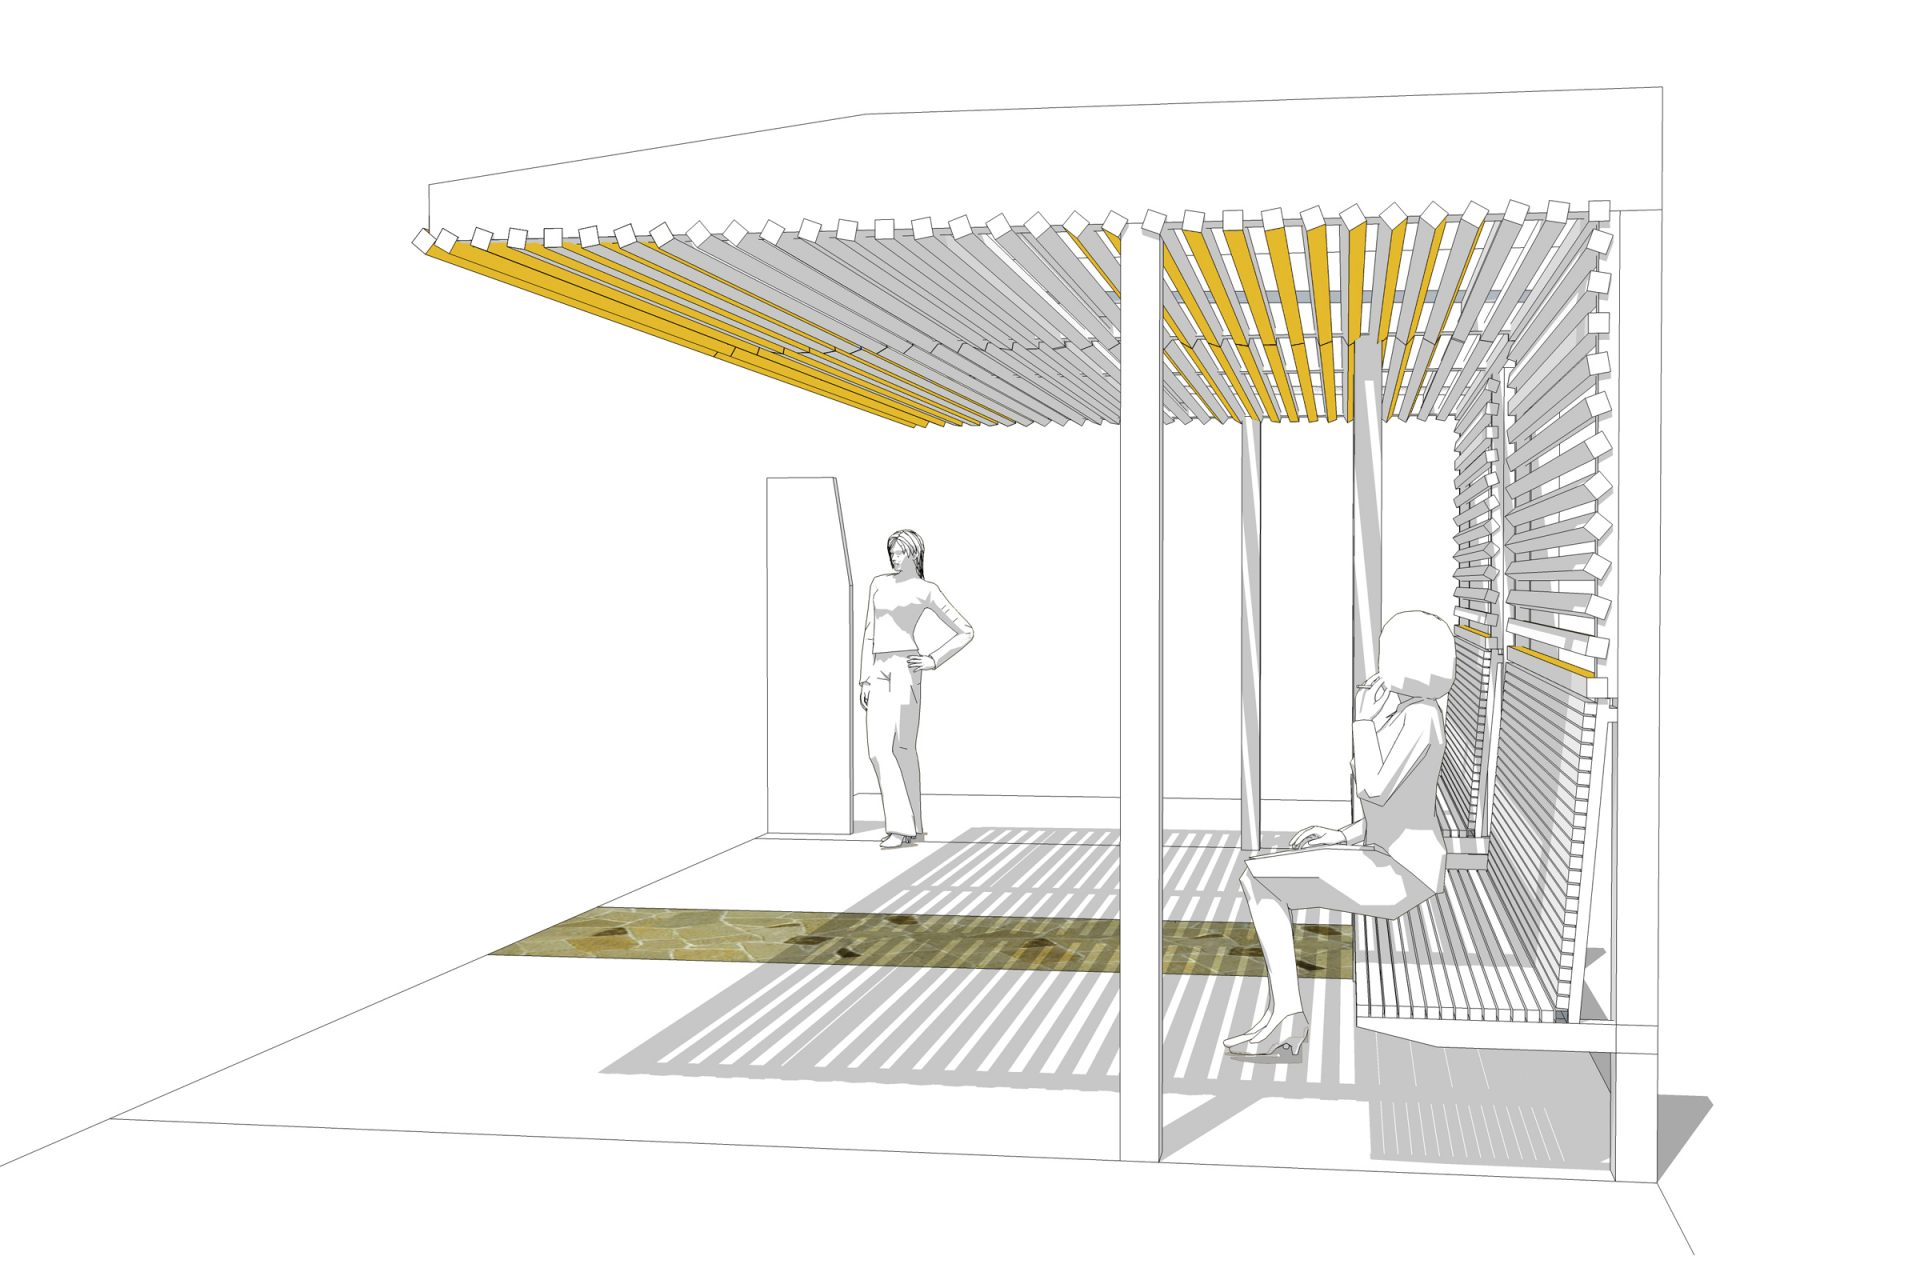 Rendering Of A Bus Shelter.